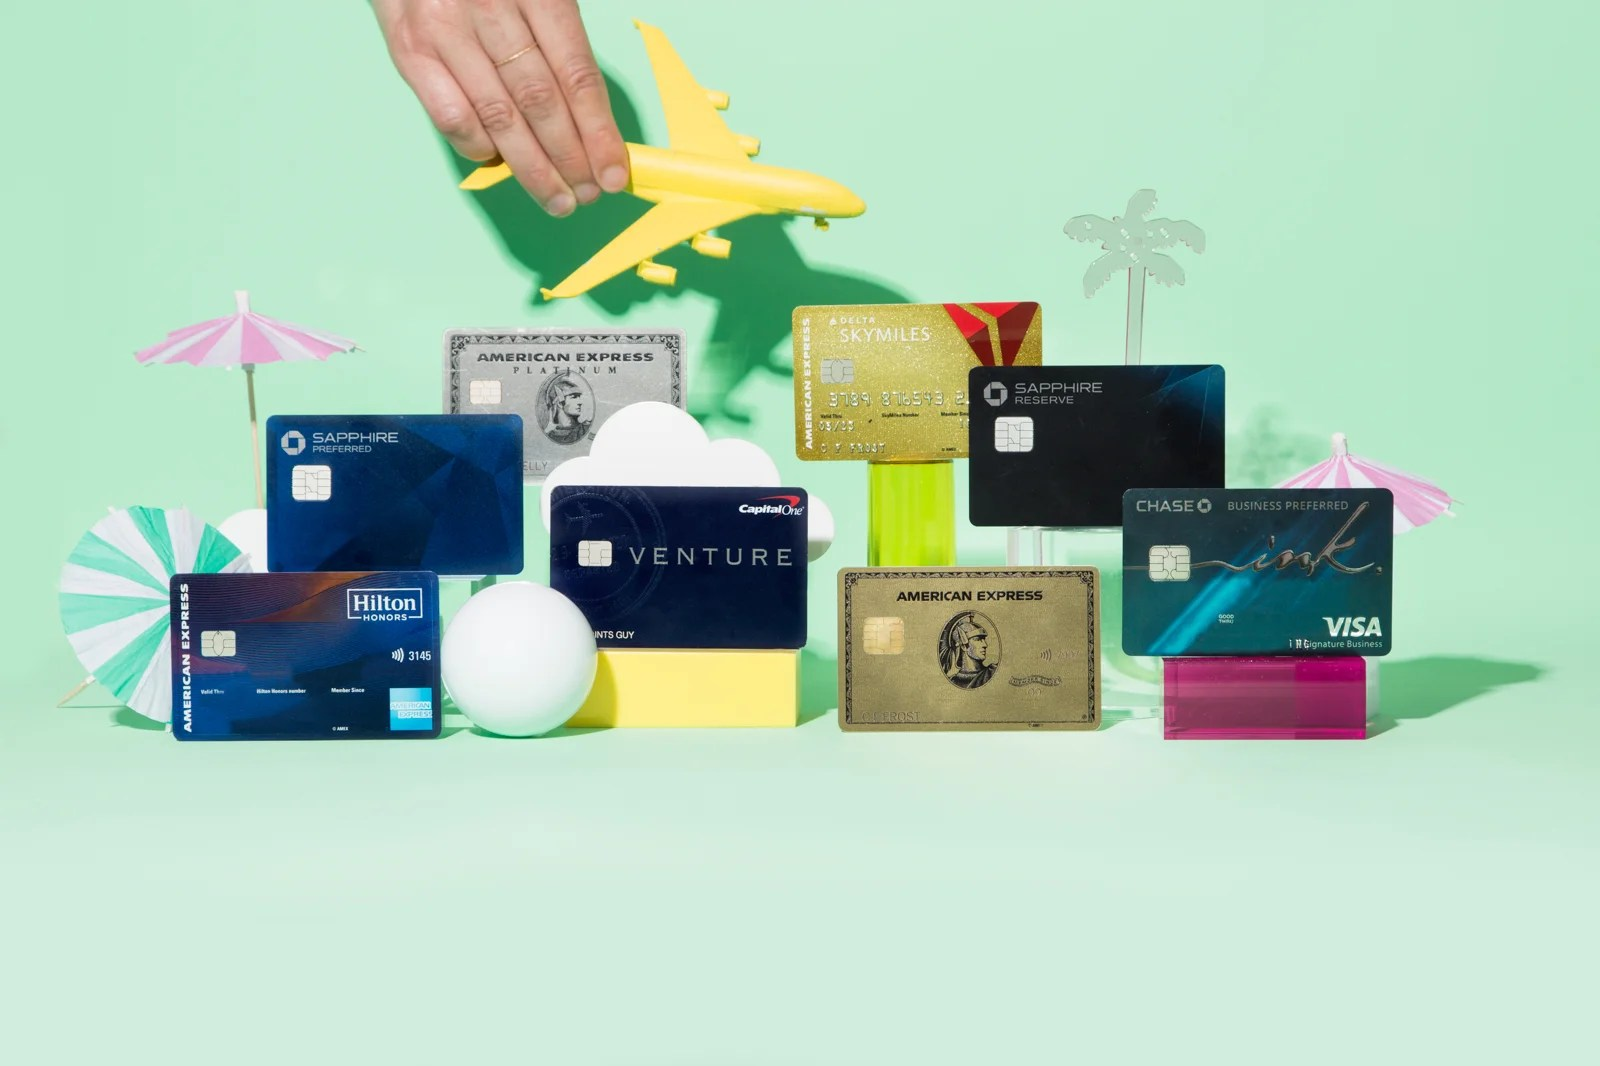 Best Travel Credit Cards of September 2019 - The Points Guy